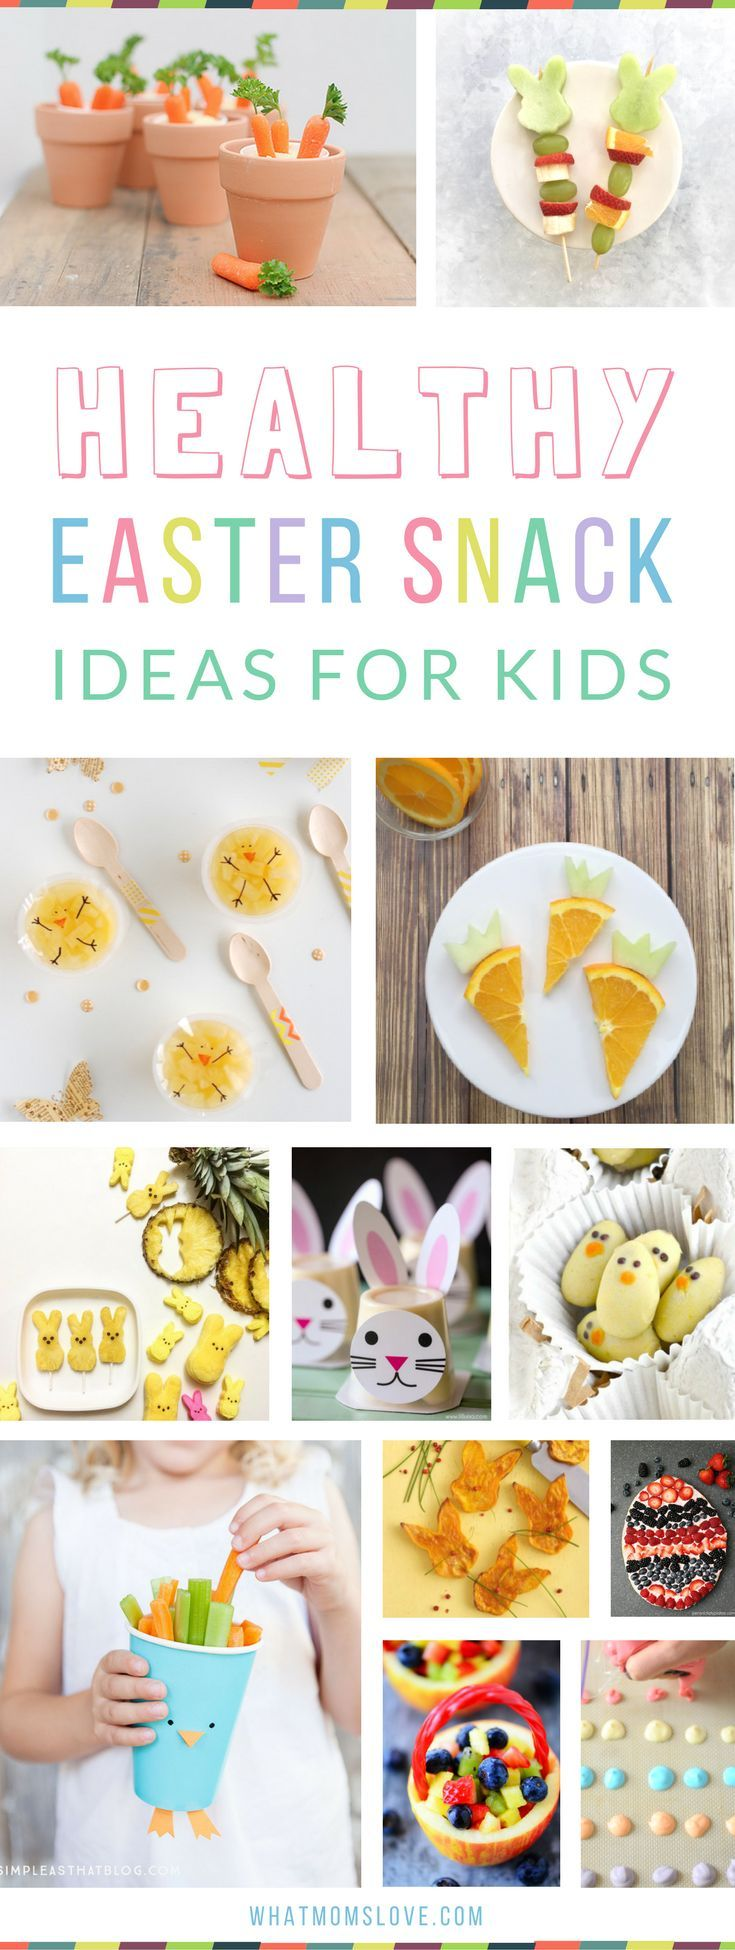 17 best ideas about preschool snacks on pinterest easter